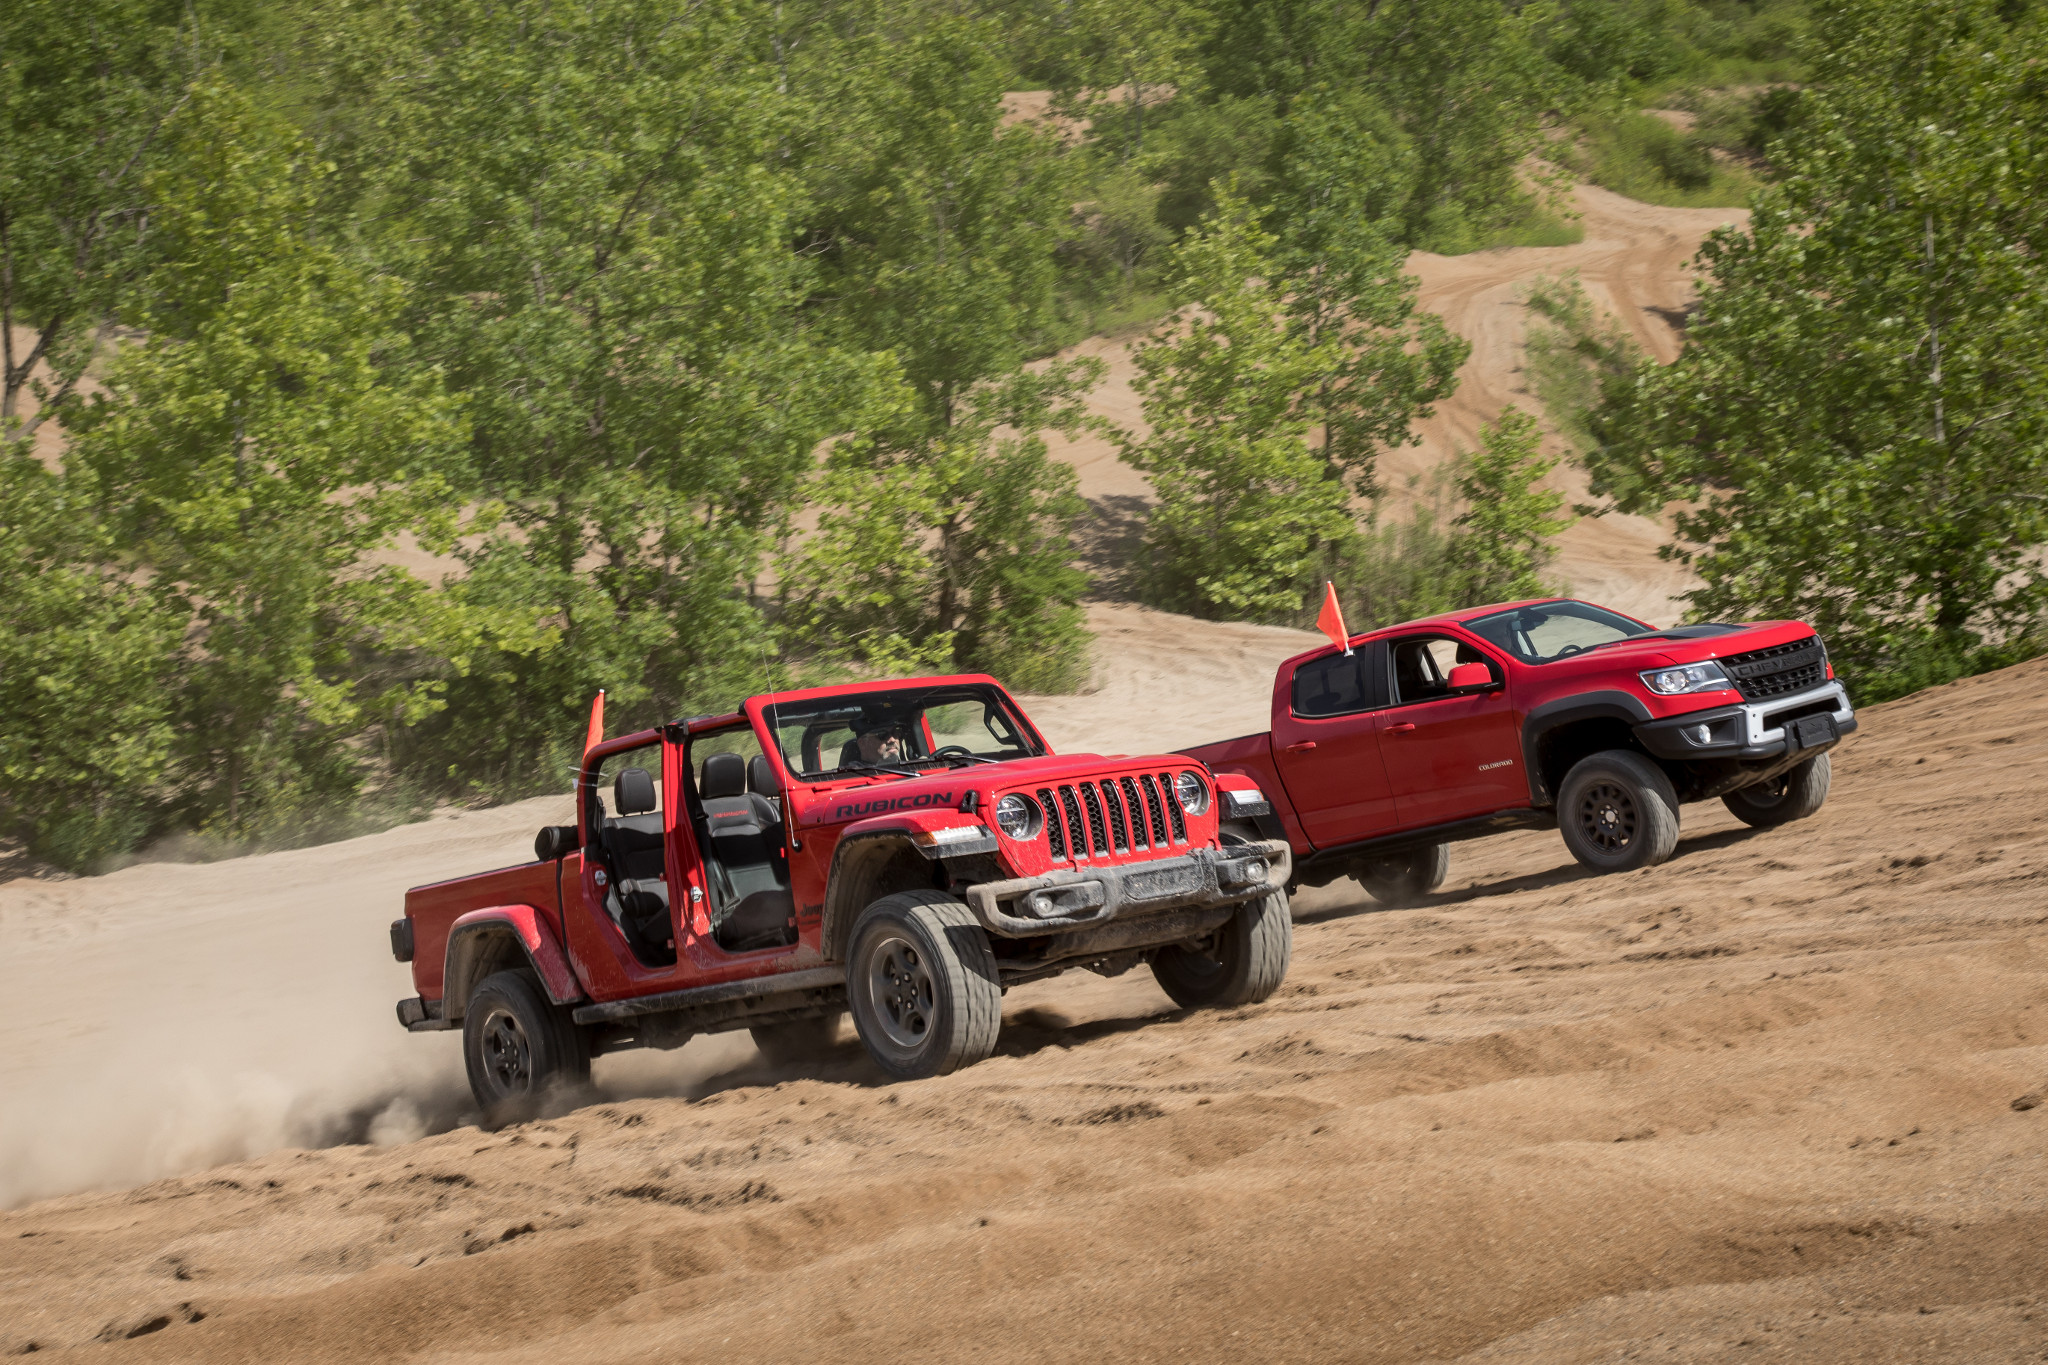 jeep--chevrolet-colorado-zr2-bison-and-gladiator-2019--2020-02-angle--dynamic--exterior--front--off-road--red.jpg